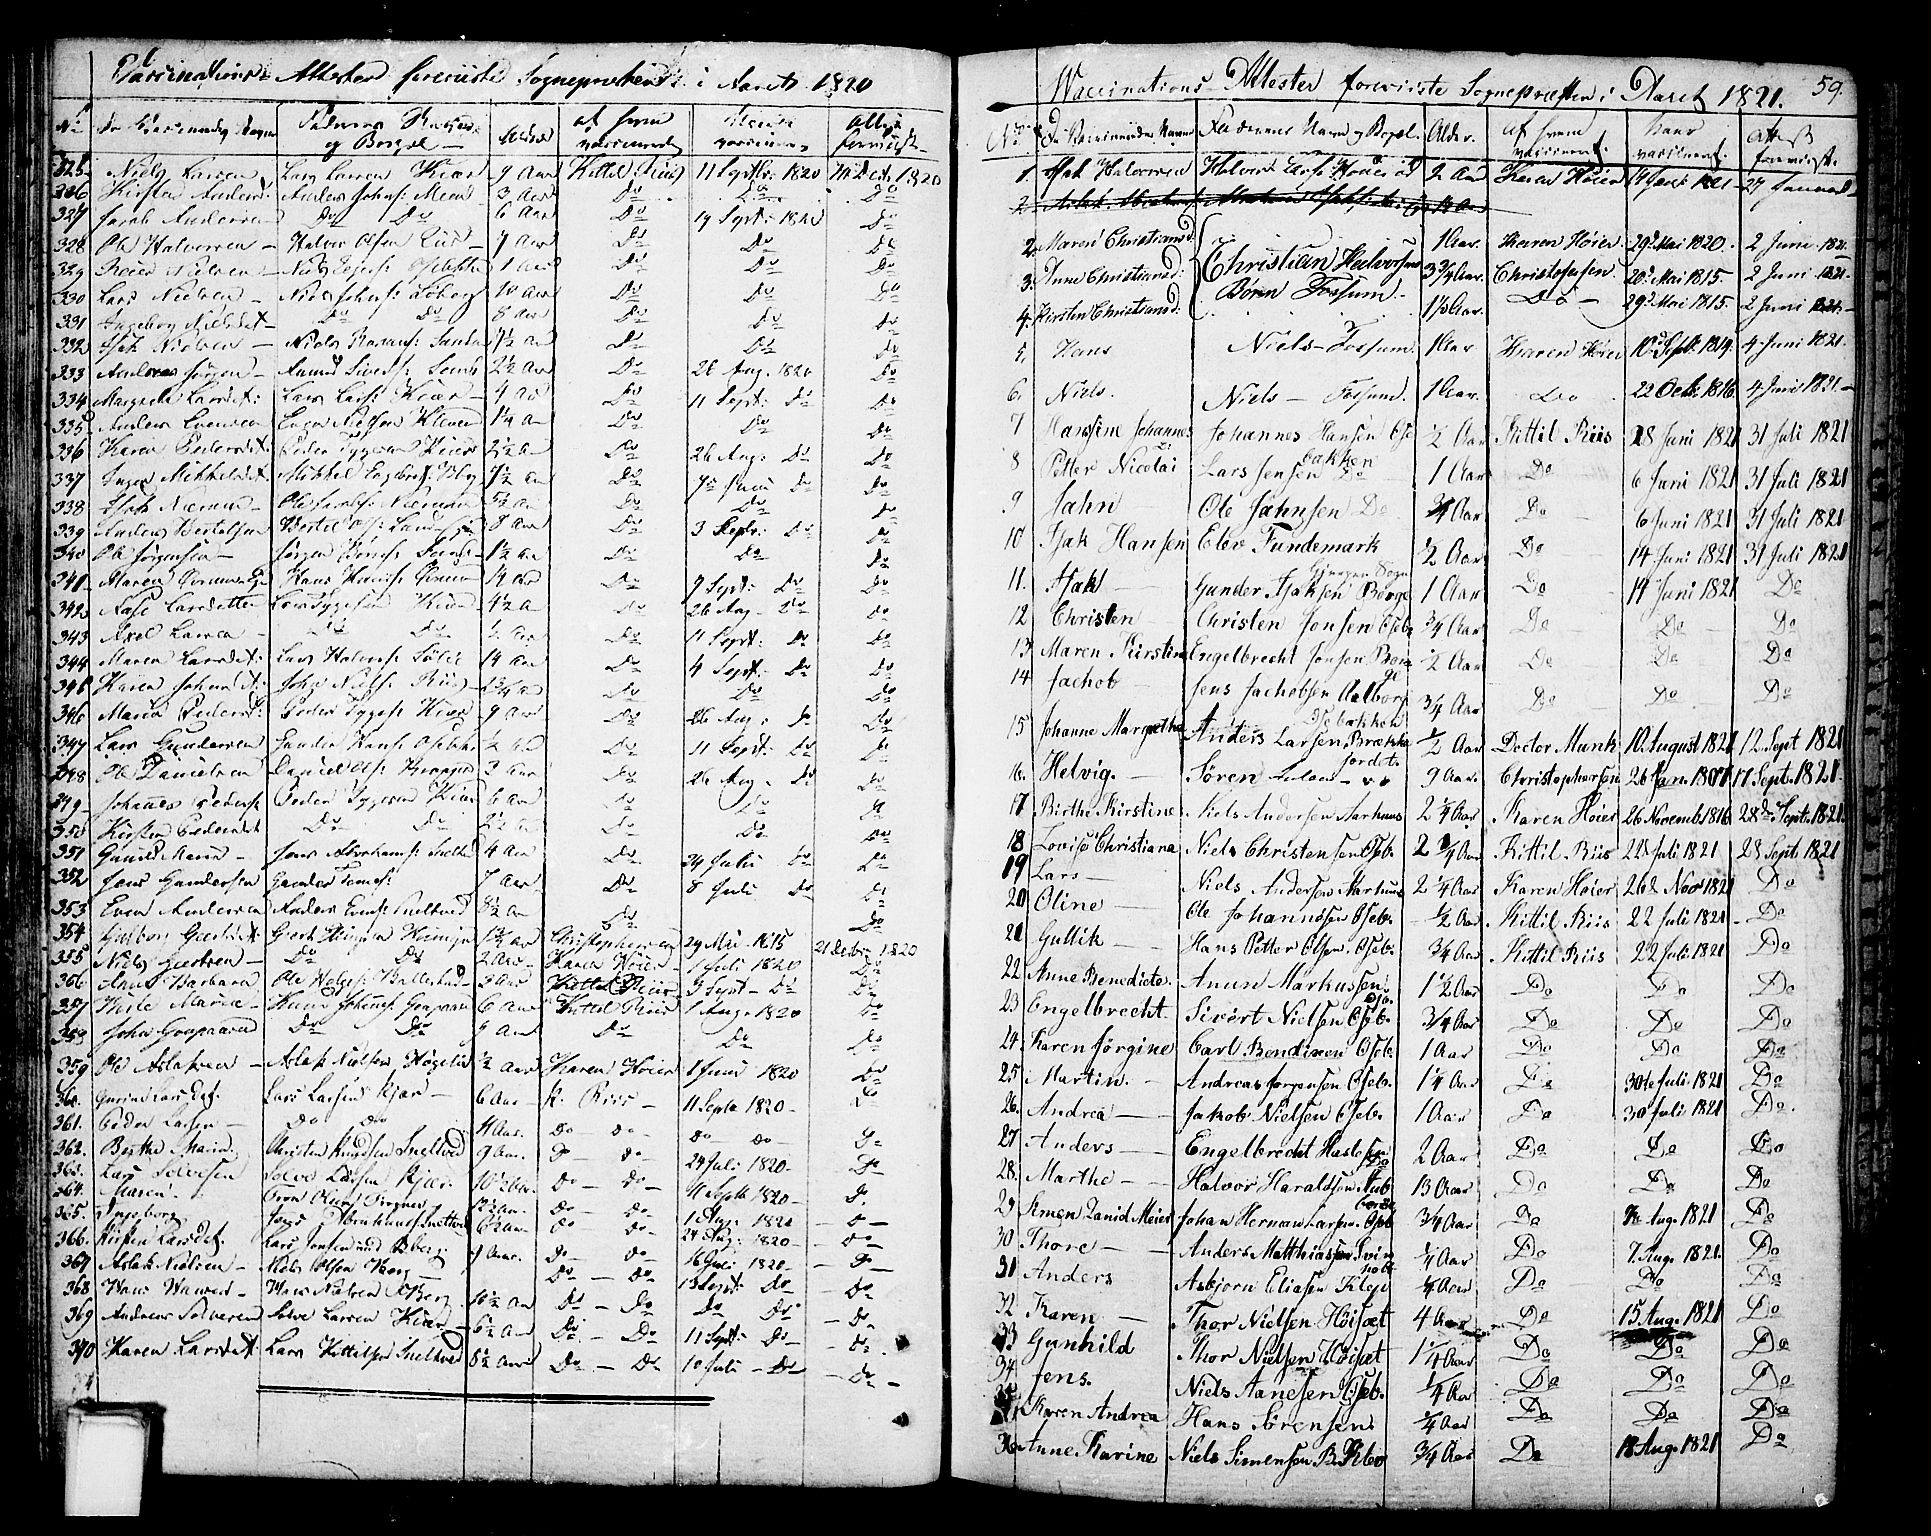 SAKO, Gjerpen kirkebøker, F/Fa/L0003: Parish register (official) no. 3, 1796-1814, p. 59